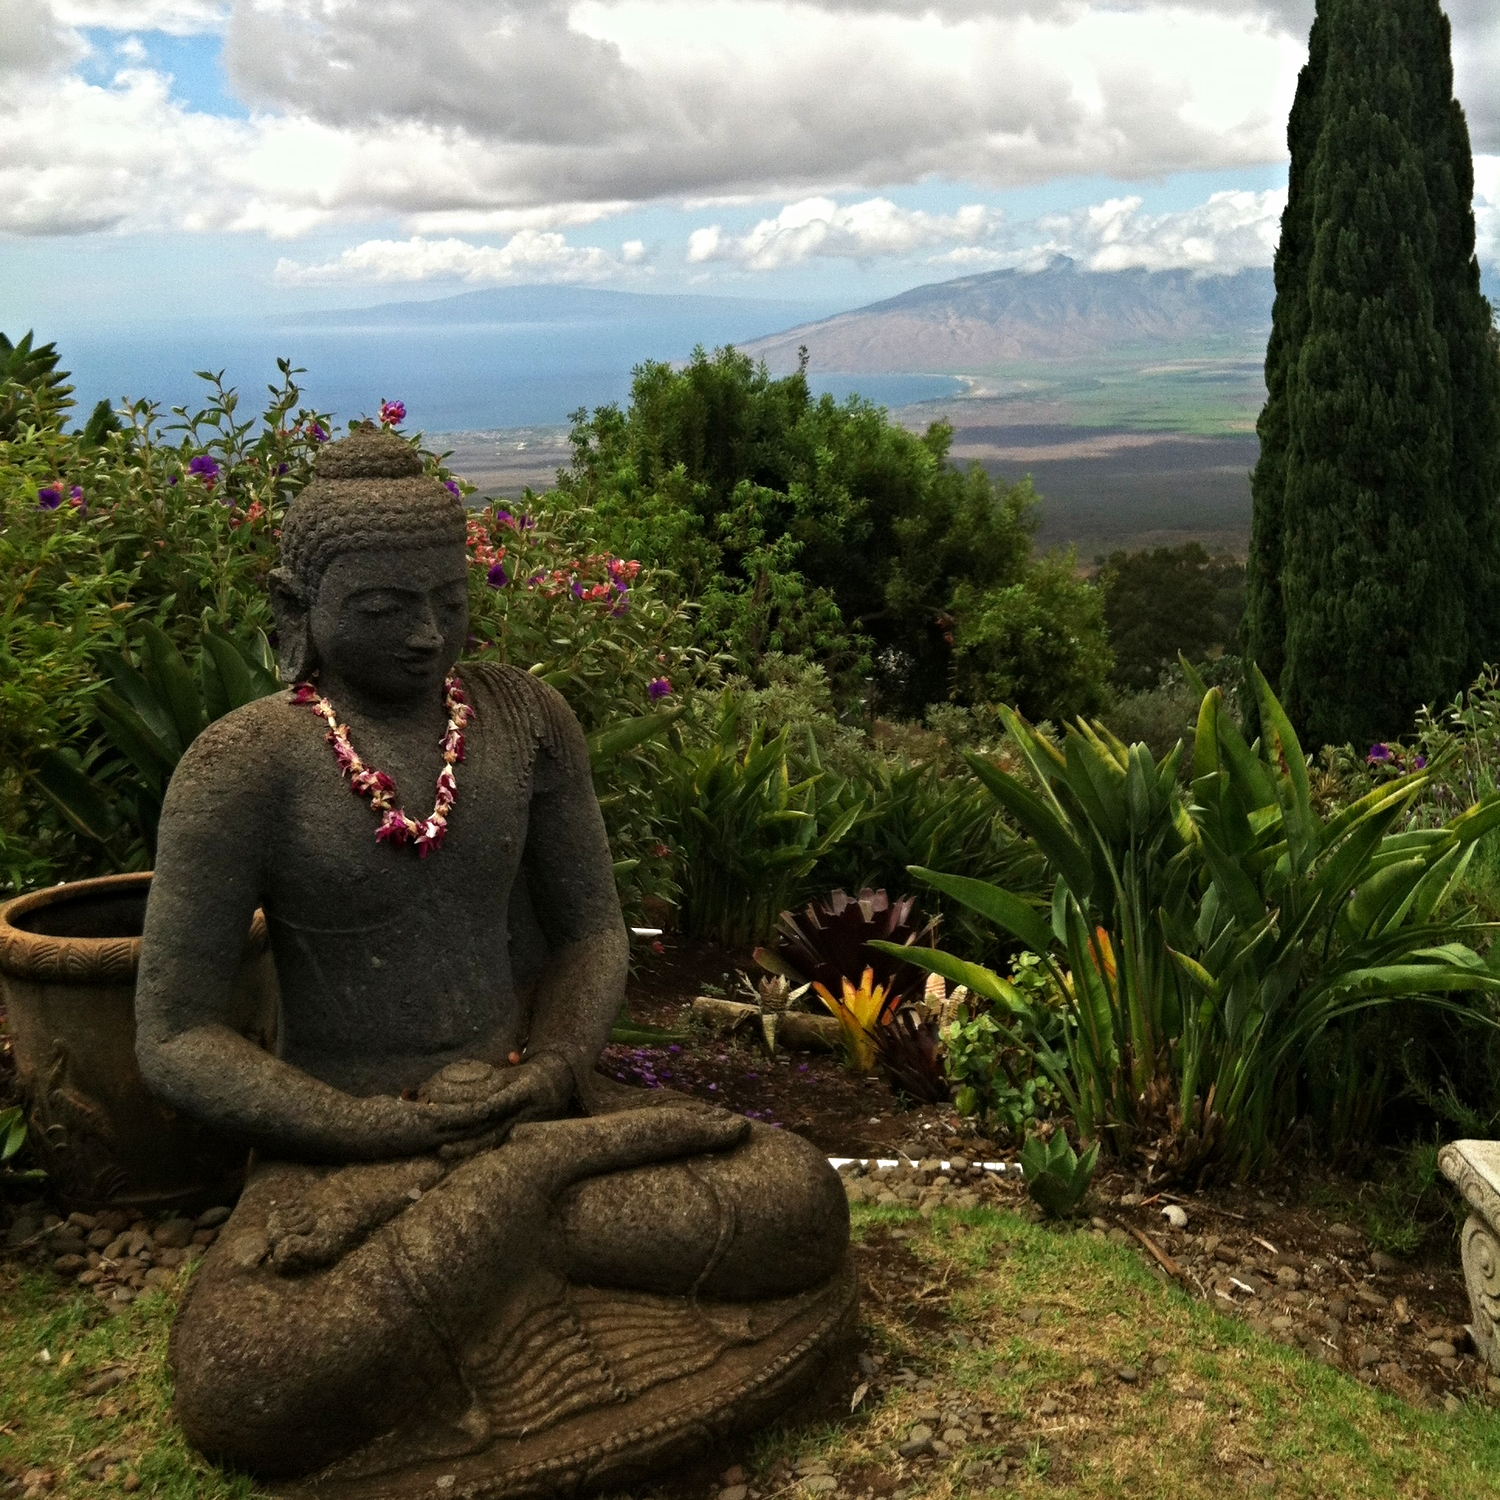 Buddha statue at a vista point on the Hawaiian island of Maui